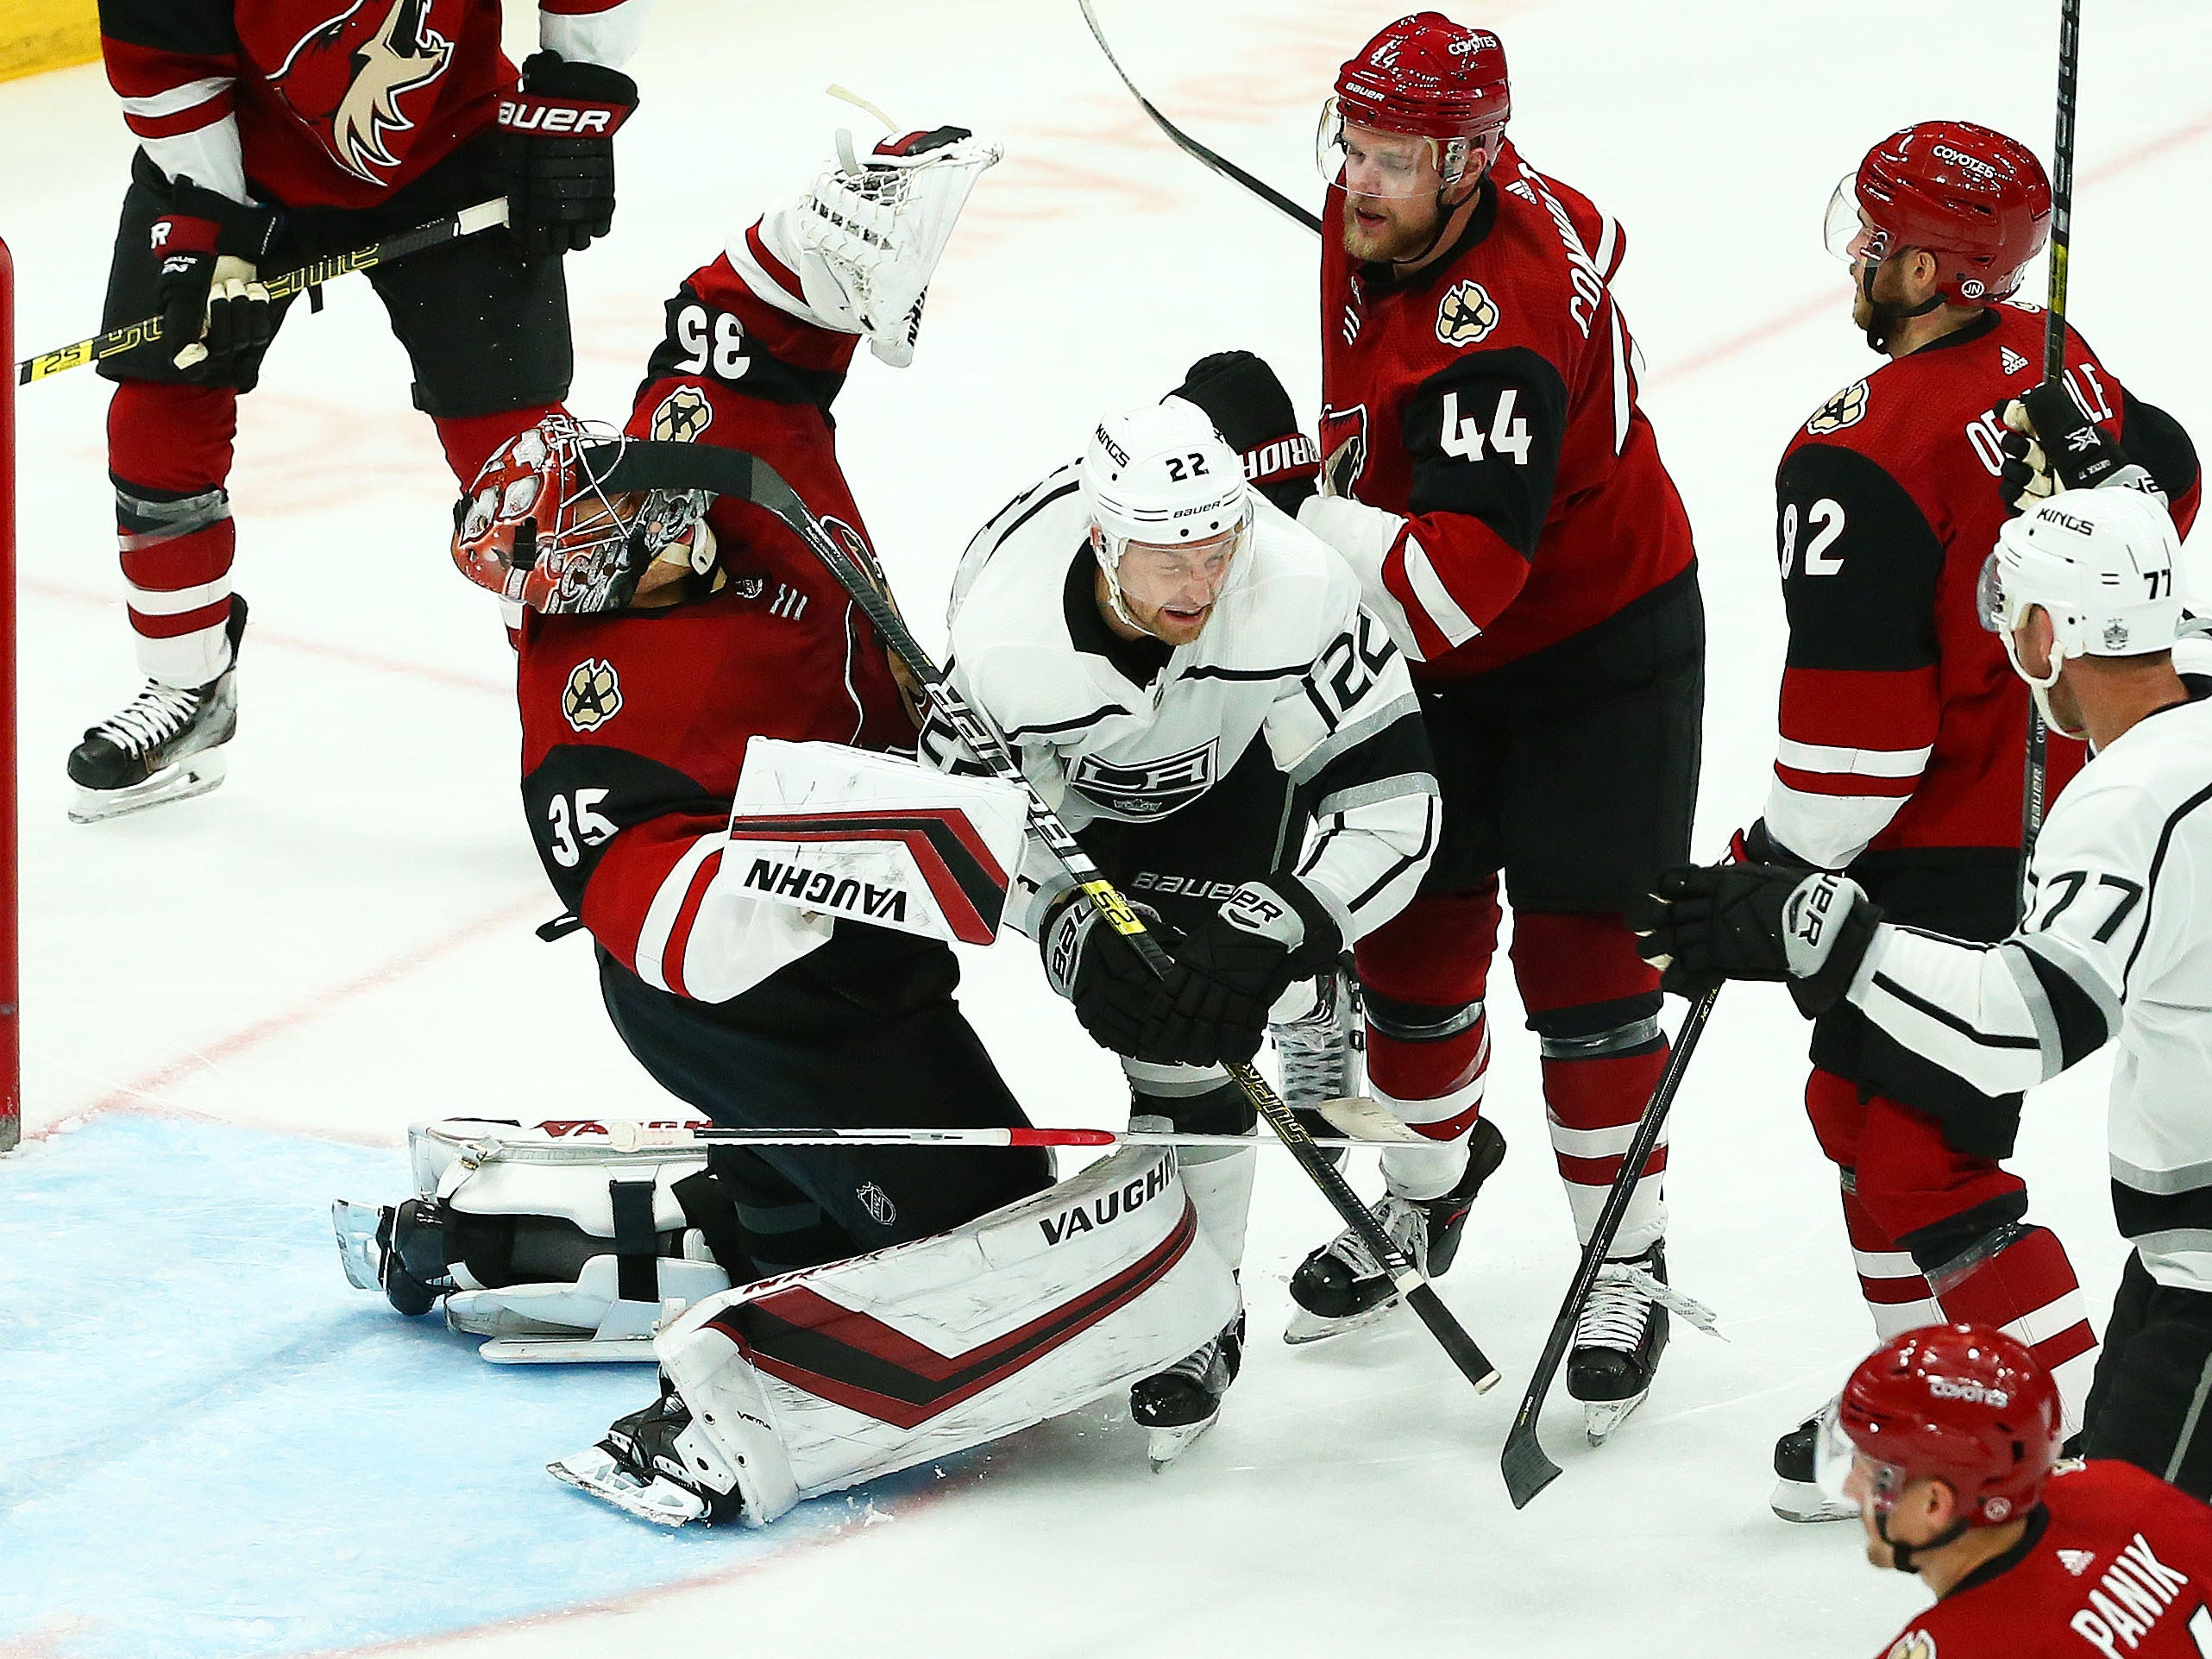 Arizona Coyotes goaltender Darcy Kuemper (35) takes a stick in the eye from Los Angeles Kings center Trevor Lewis (22) after scoring a goal in the third period on Apr. 2, 2019 at Gila River Arena in Glendale, Ariz. Kuemper left the game due to this injury.